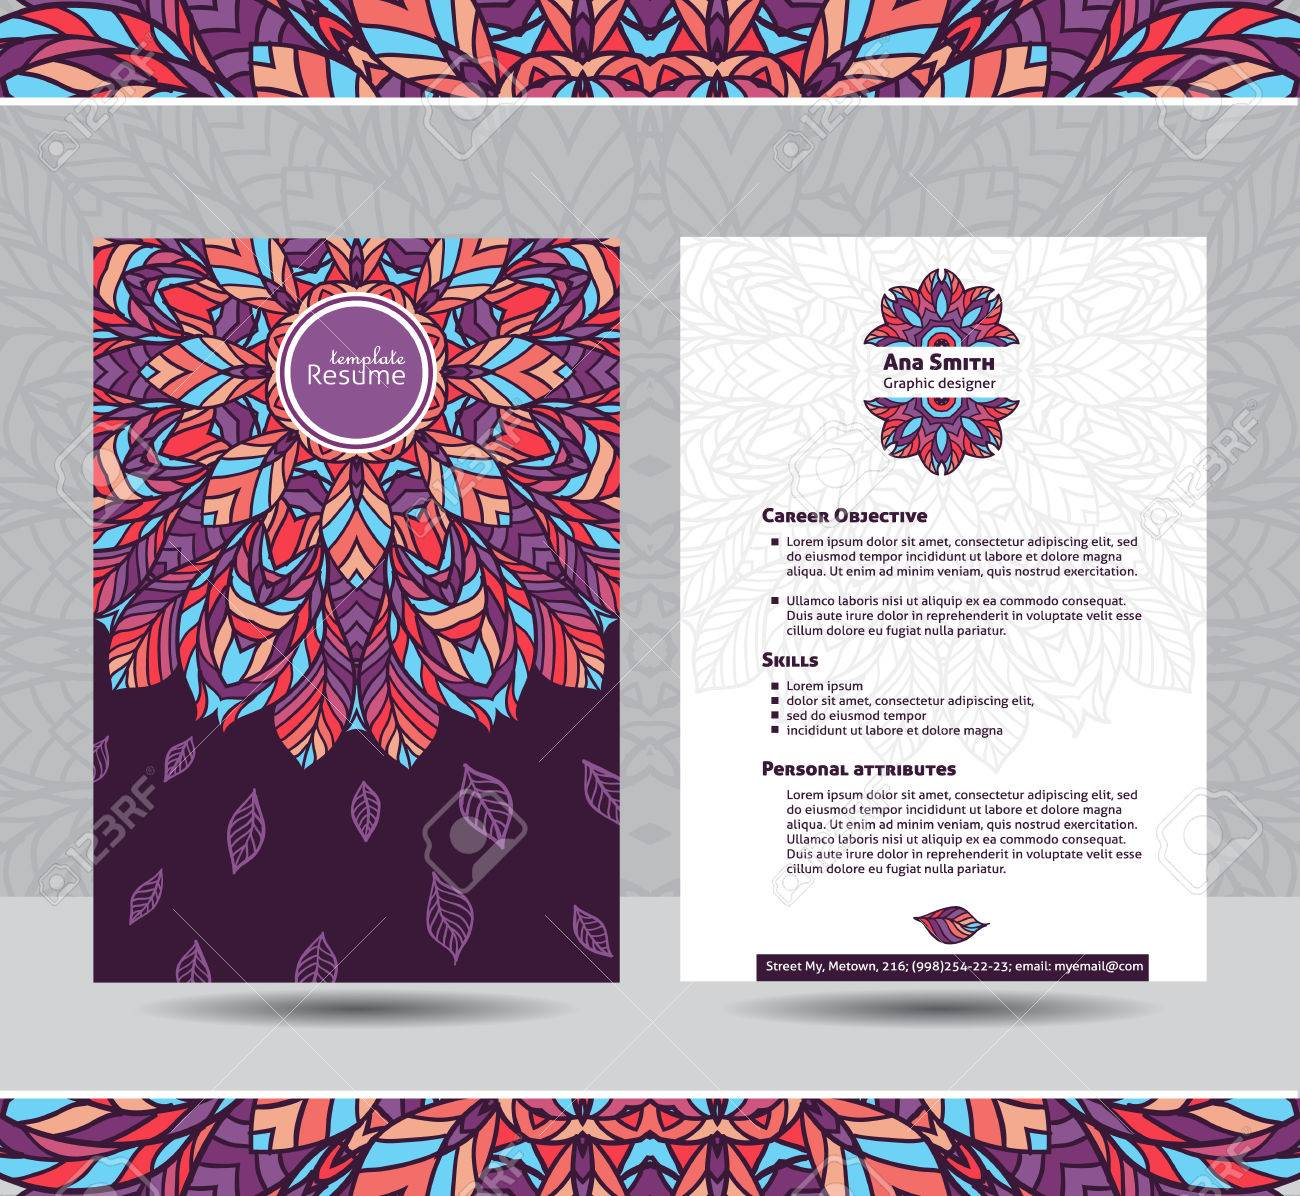 Creative Template For Resume. Colorful Round Mandala Ornament On Both  Sides. Ready For Use